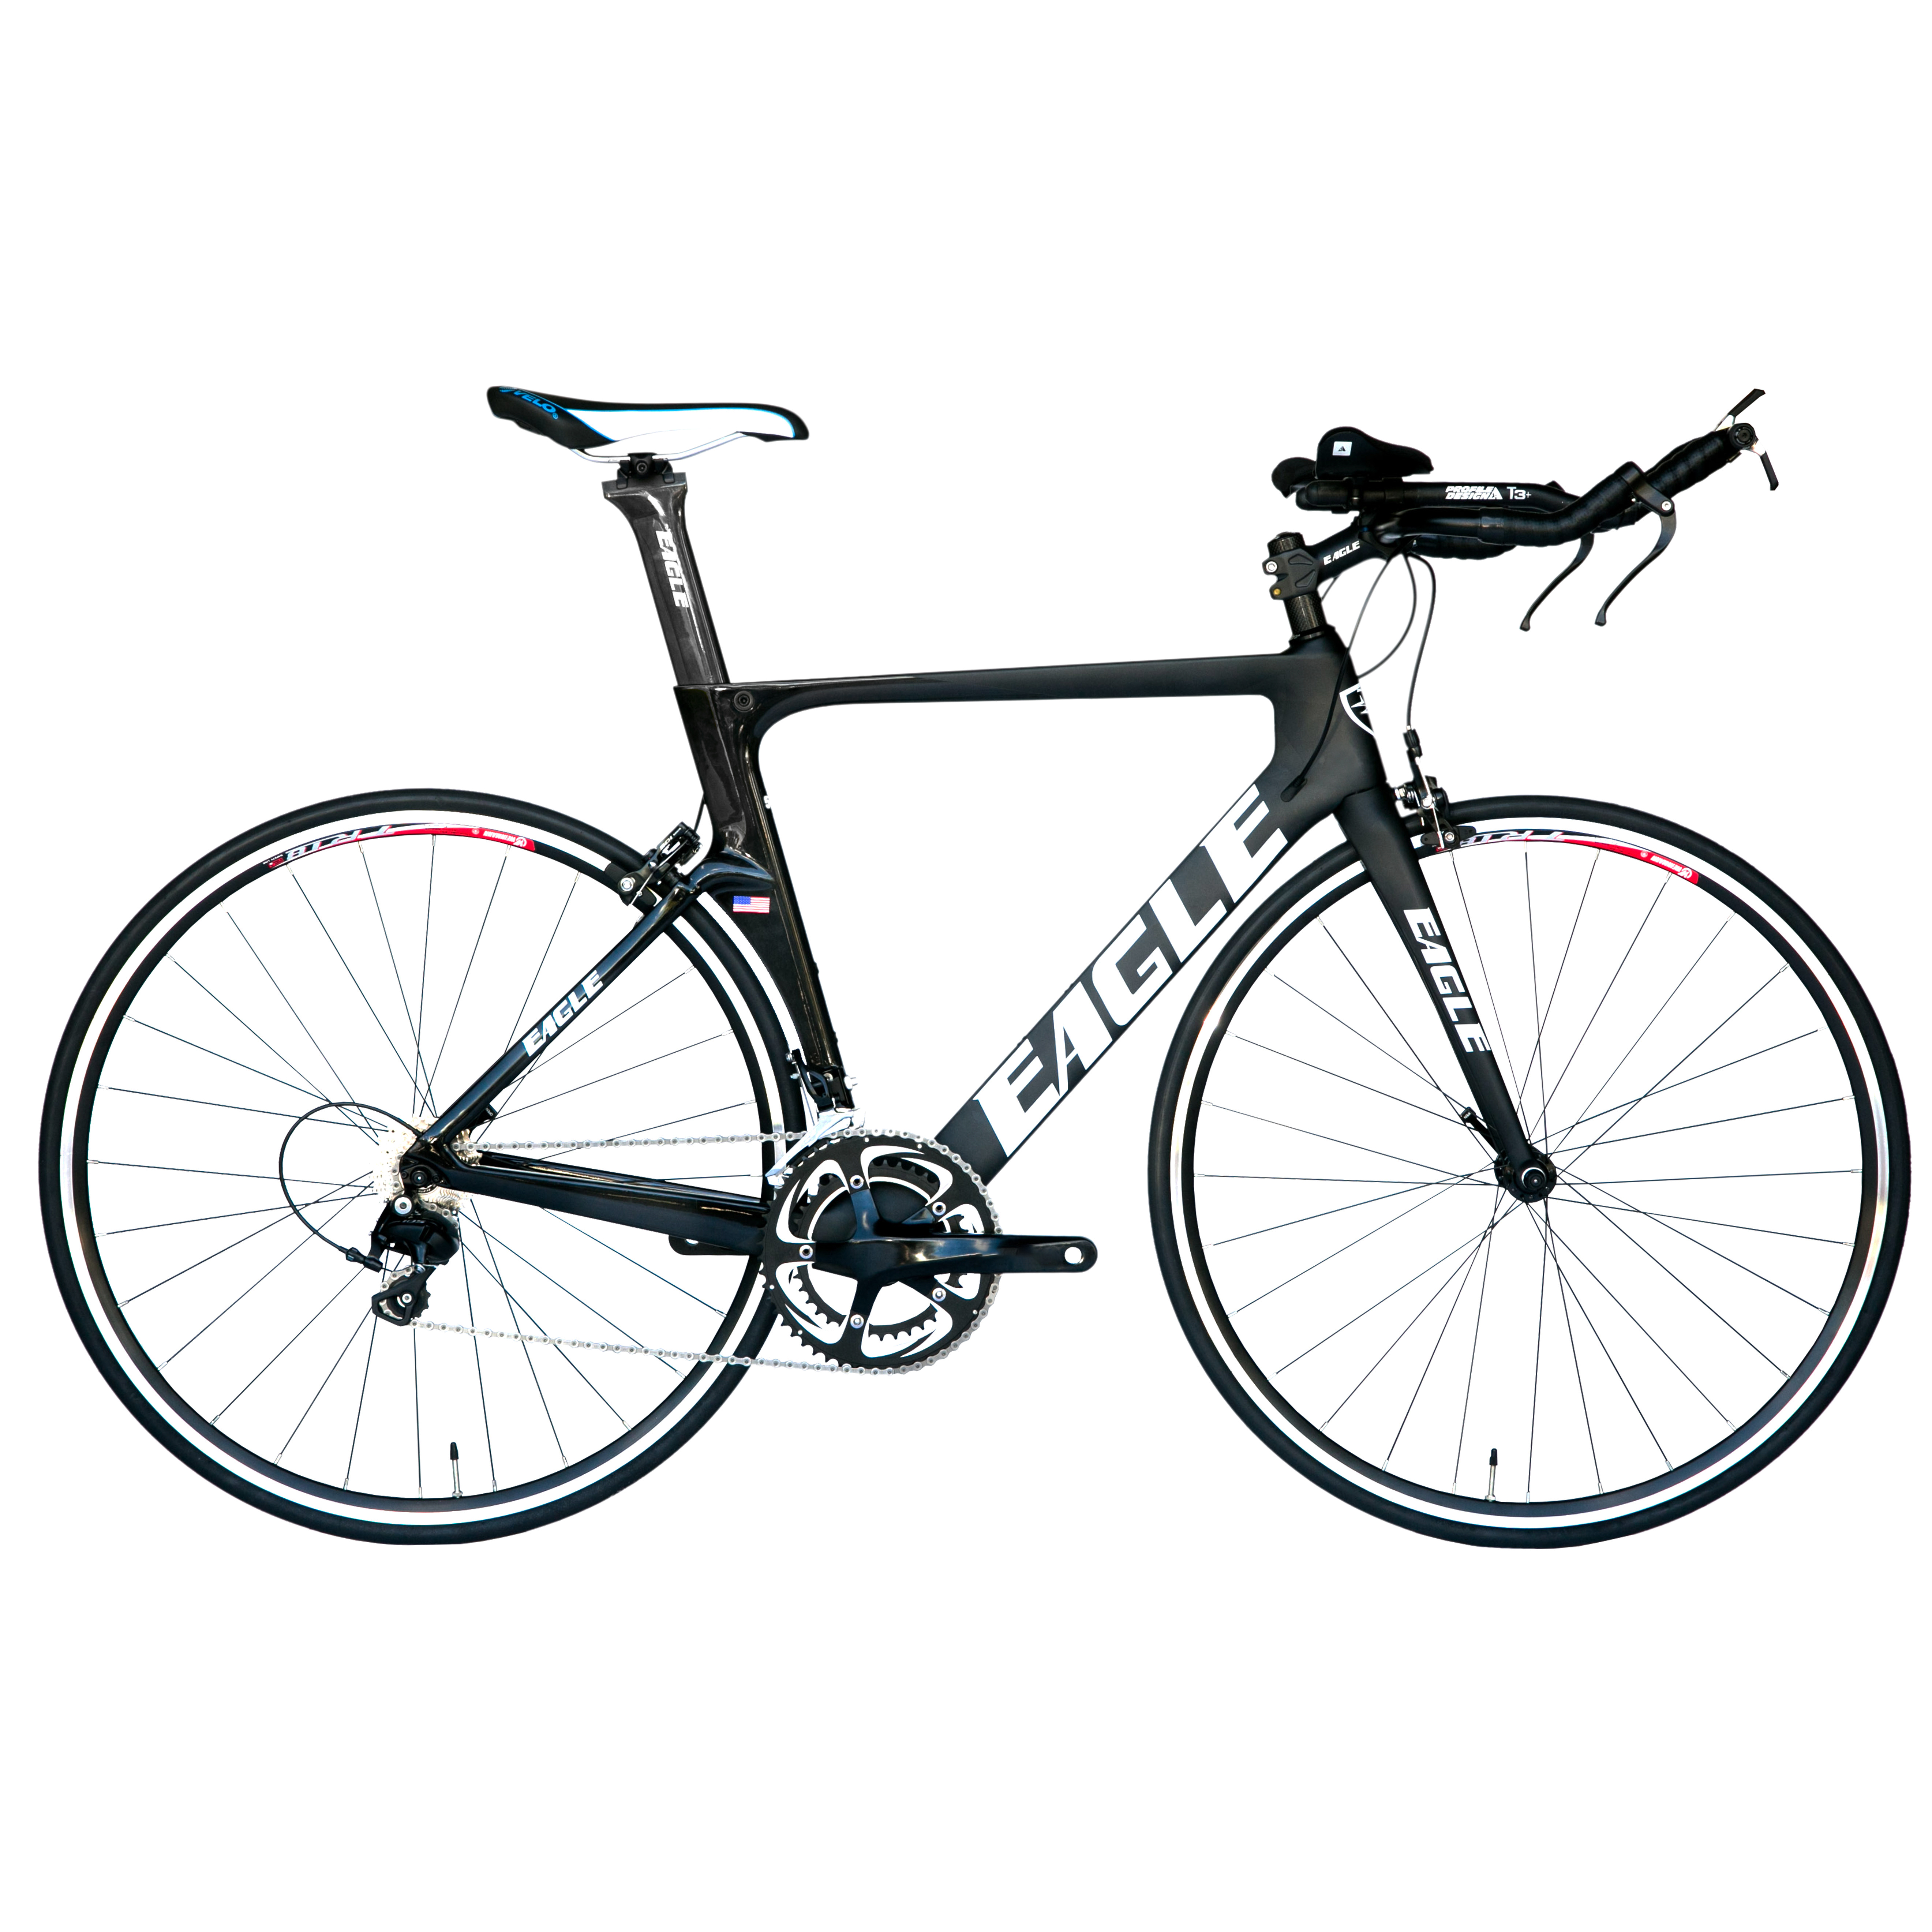 Eagle T1 Carbon Fiber Triathlon Bike